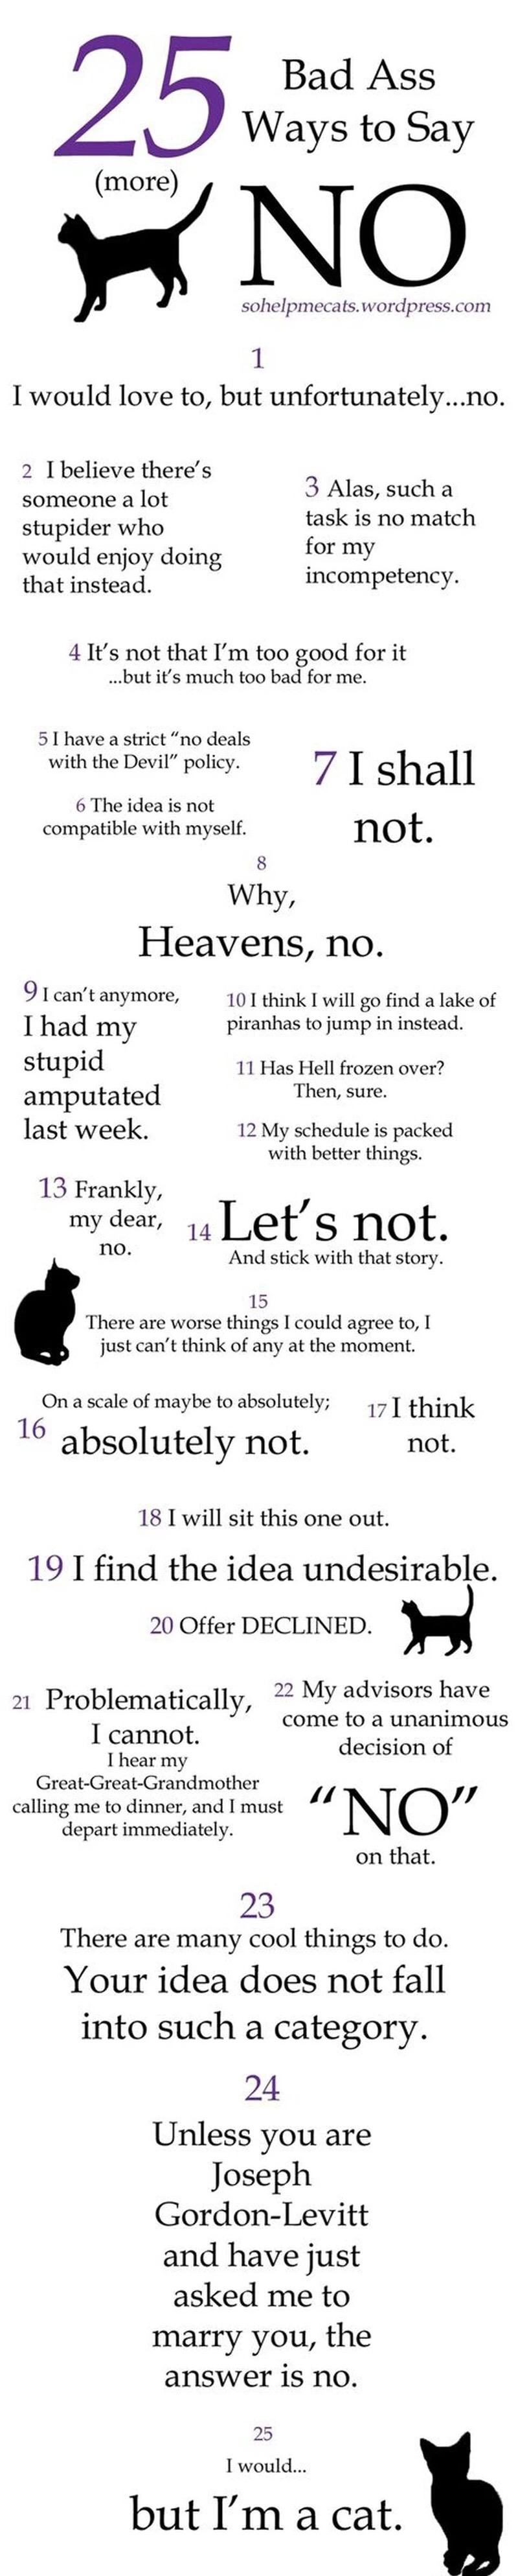 25 Funny Ways To Say No